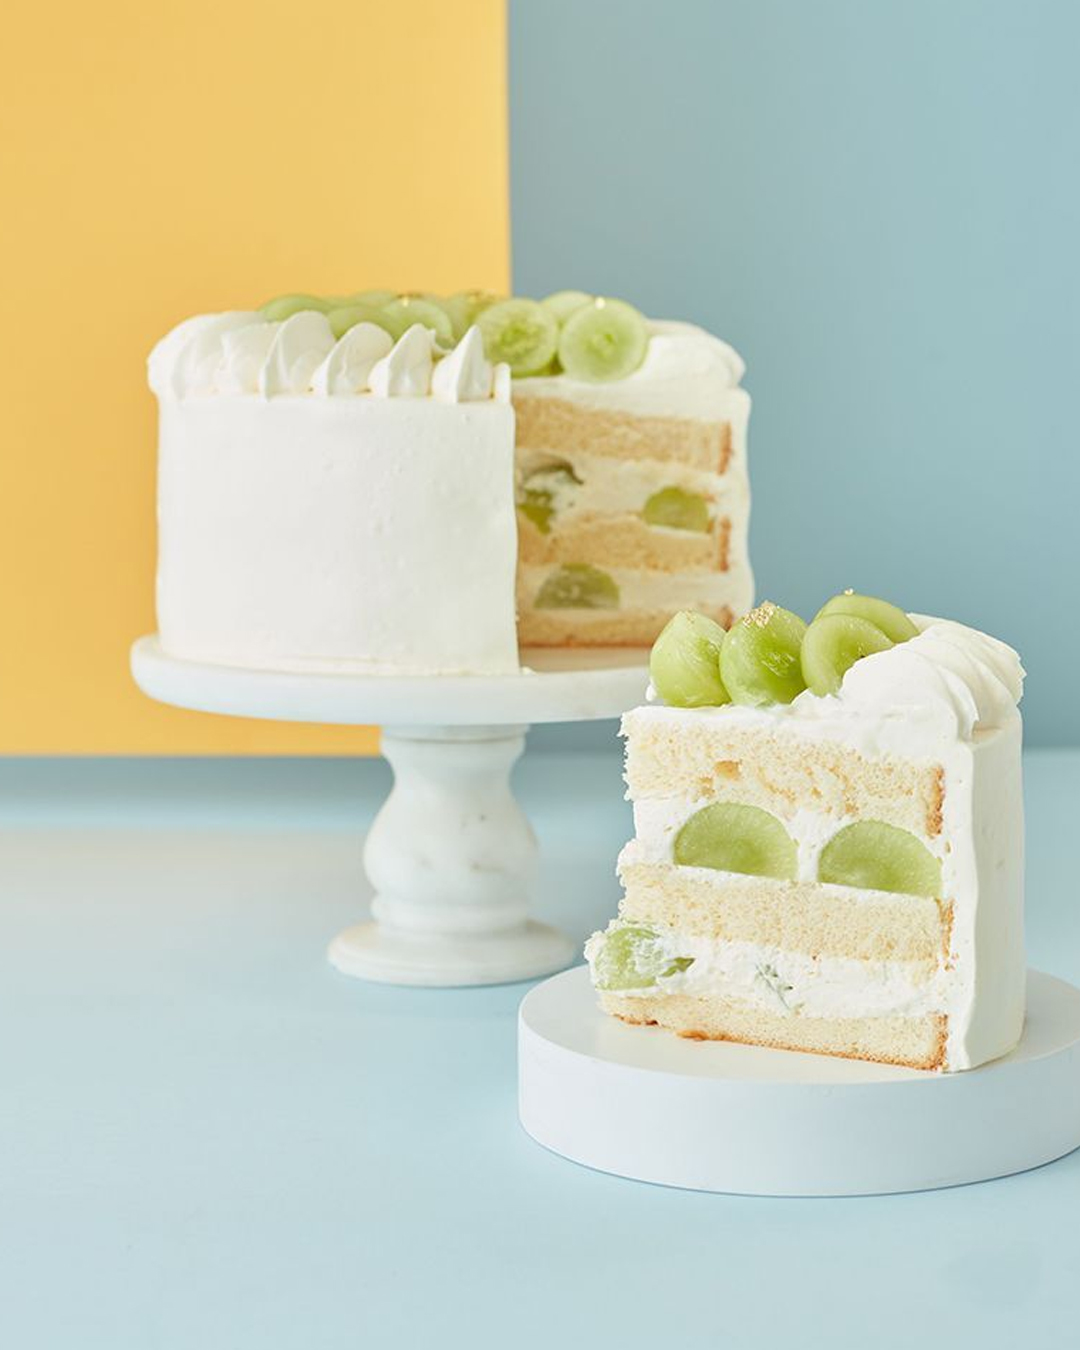 cake on turner with sliced piece in front